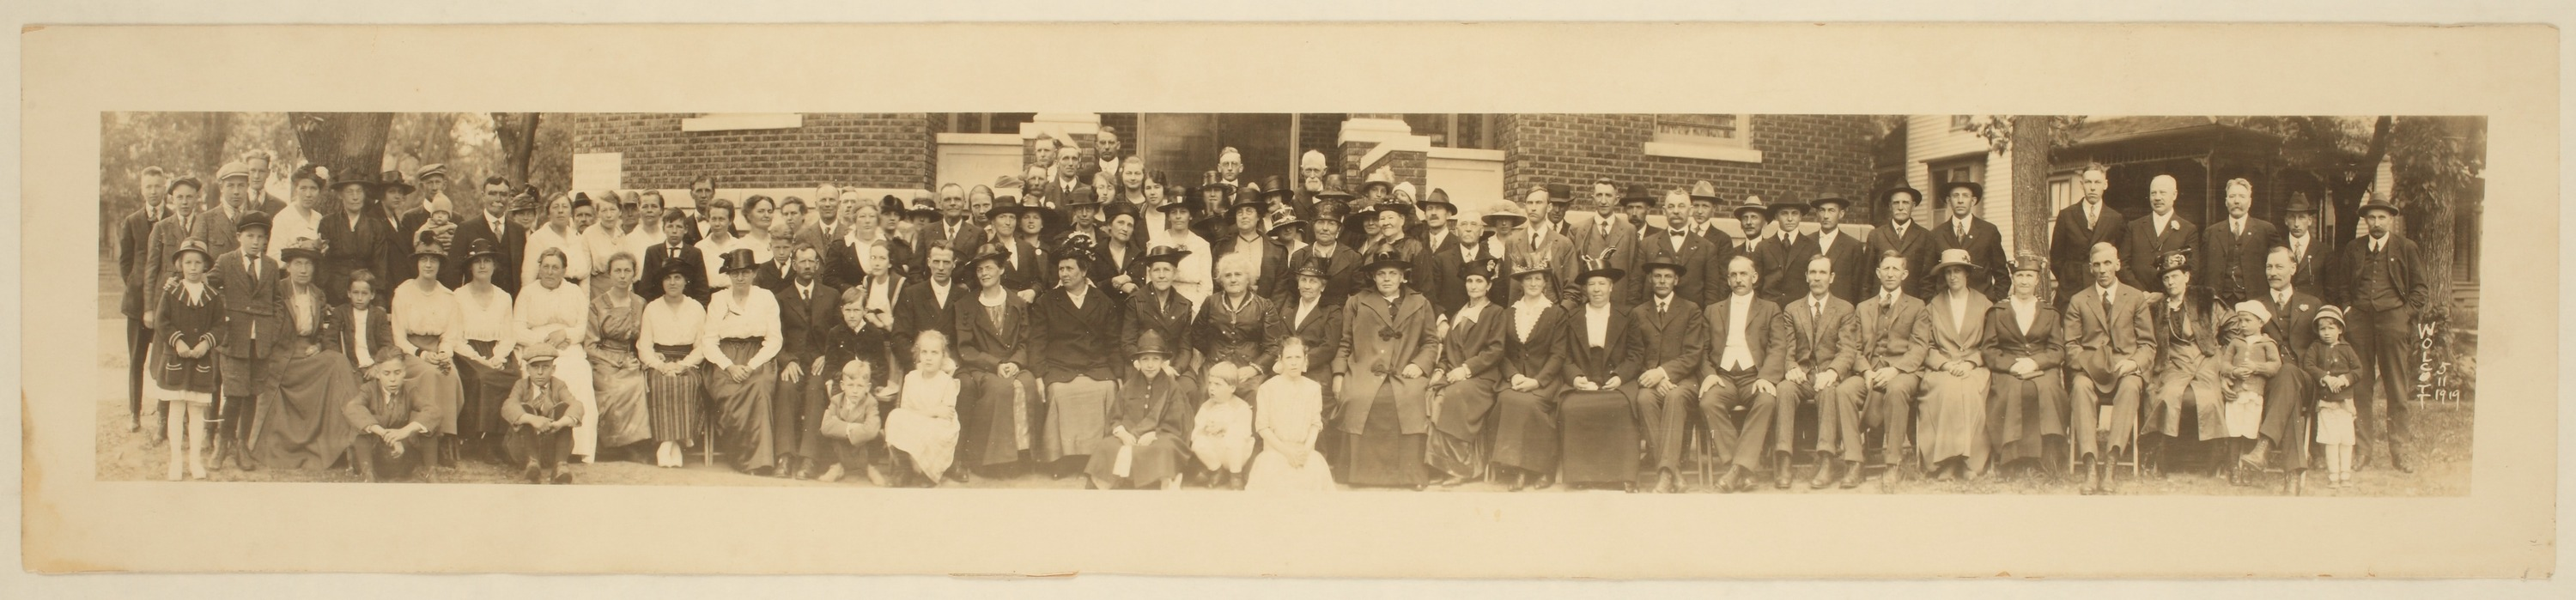 Group in front of First Swedish Baptist Church, unknown location - 1